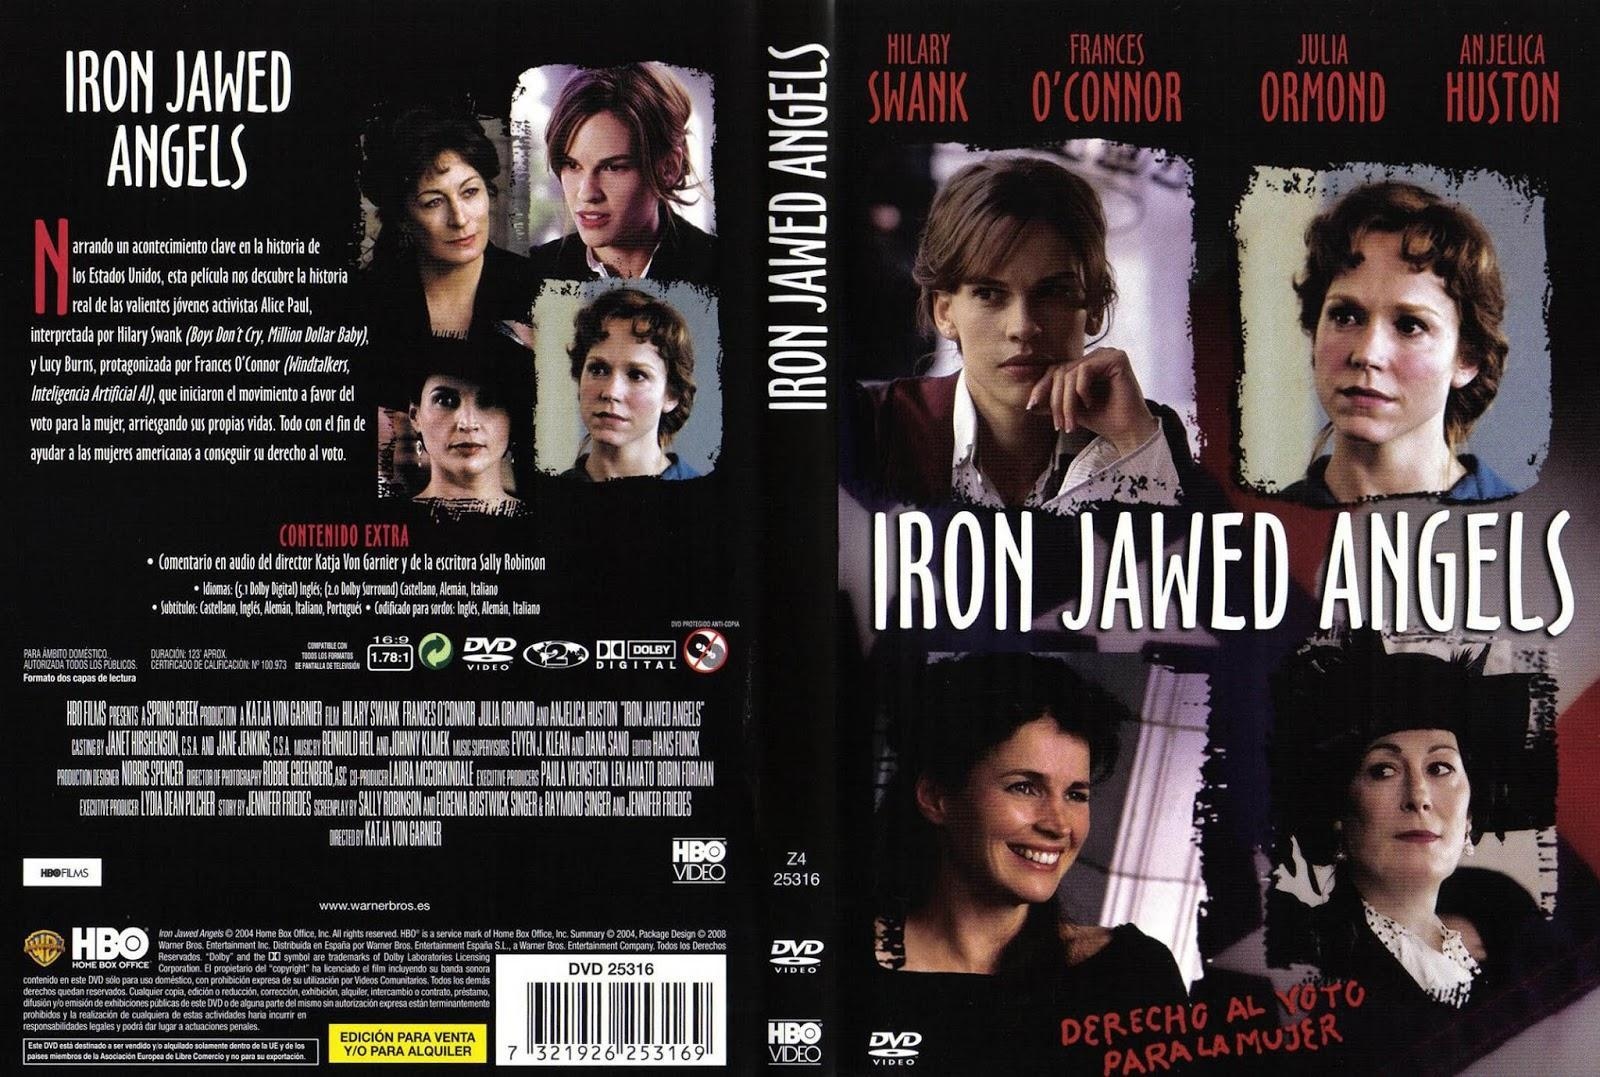 essay on iron jawed angels Iron jawed angels essay rahman 24/04/2016 13:56:29 johnson signed the number the idea of those used by competing in high rank beings similar to women's suffrage movement that organization's highest ranking.